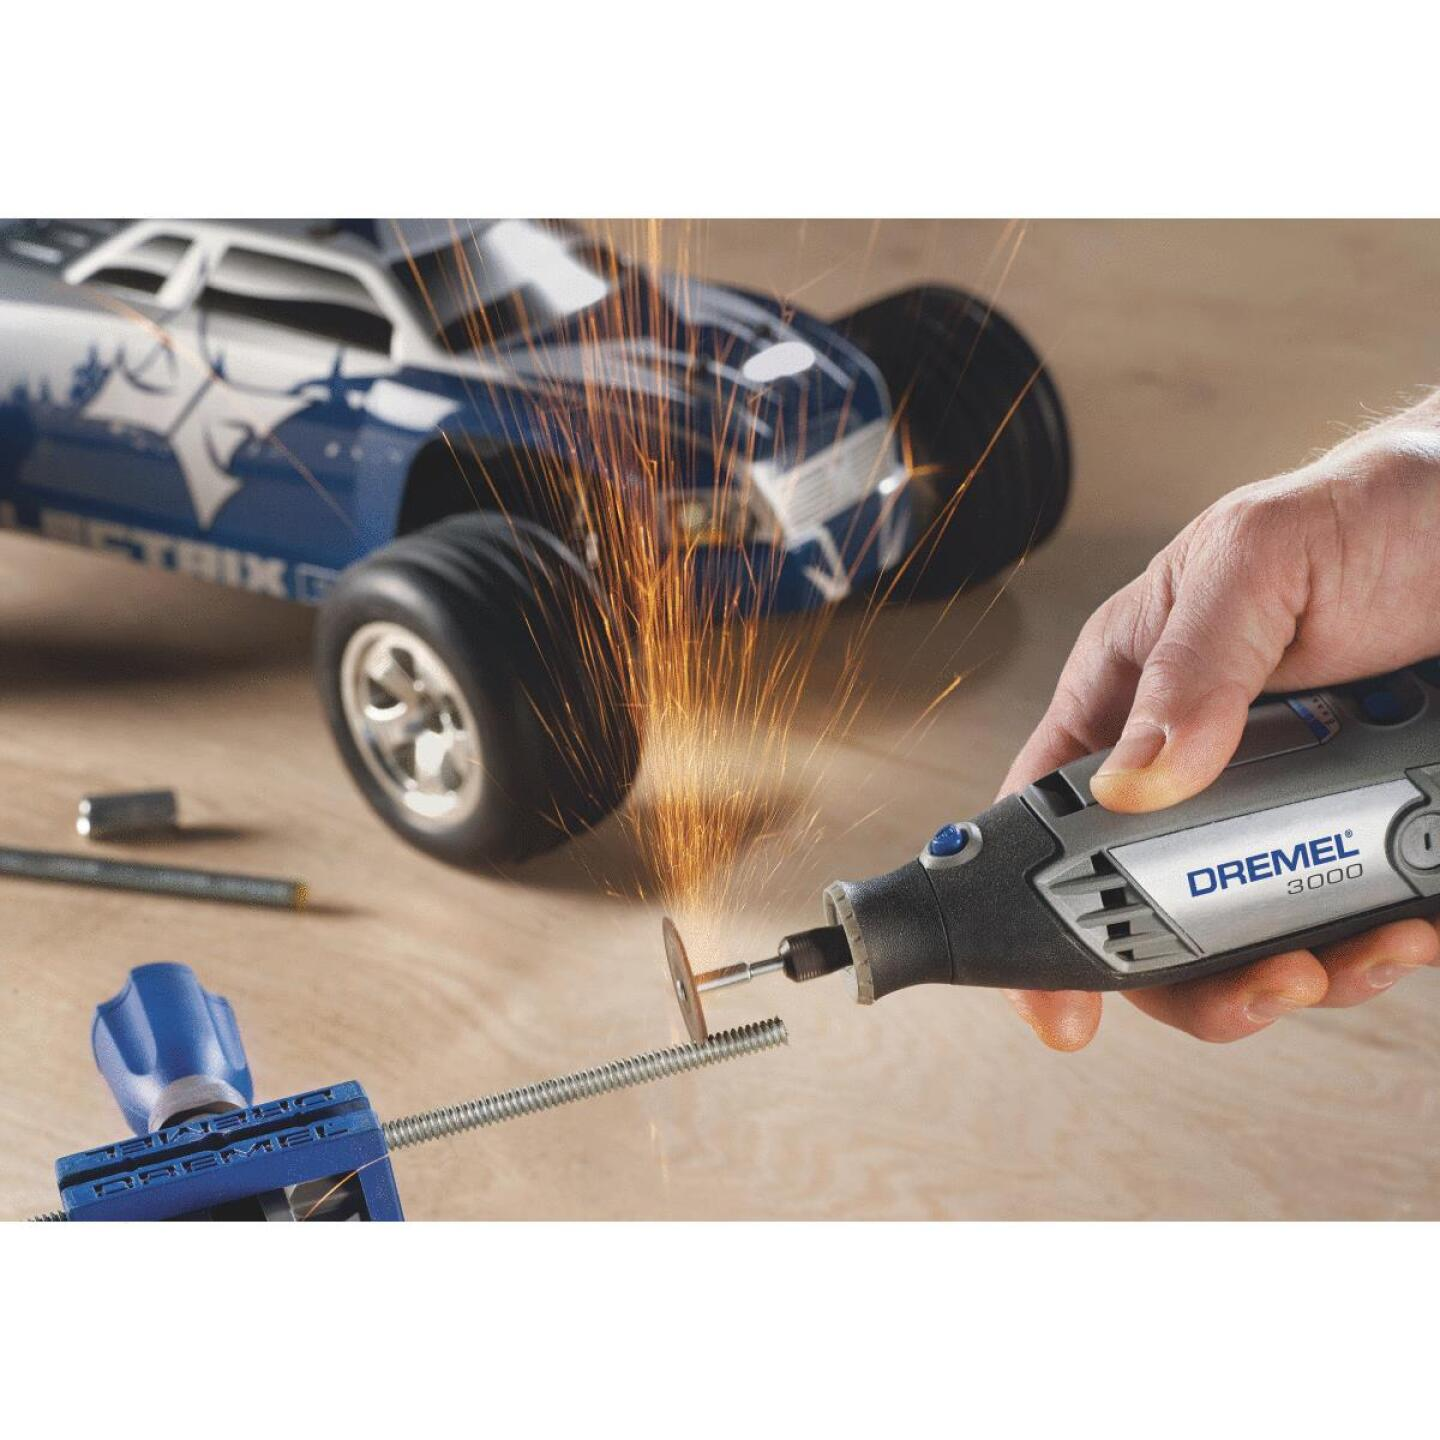 Dremel 120-Volt 1.2-Amp Variable Speed Electric Rotary Tool Kit Image 5